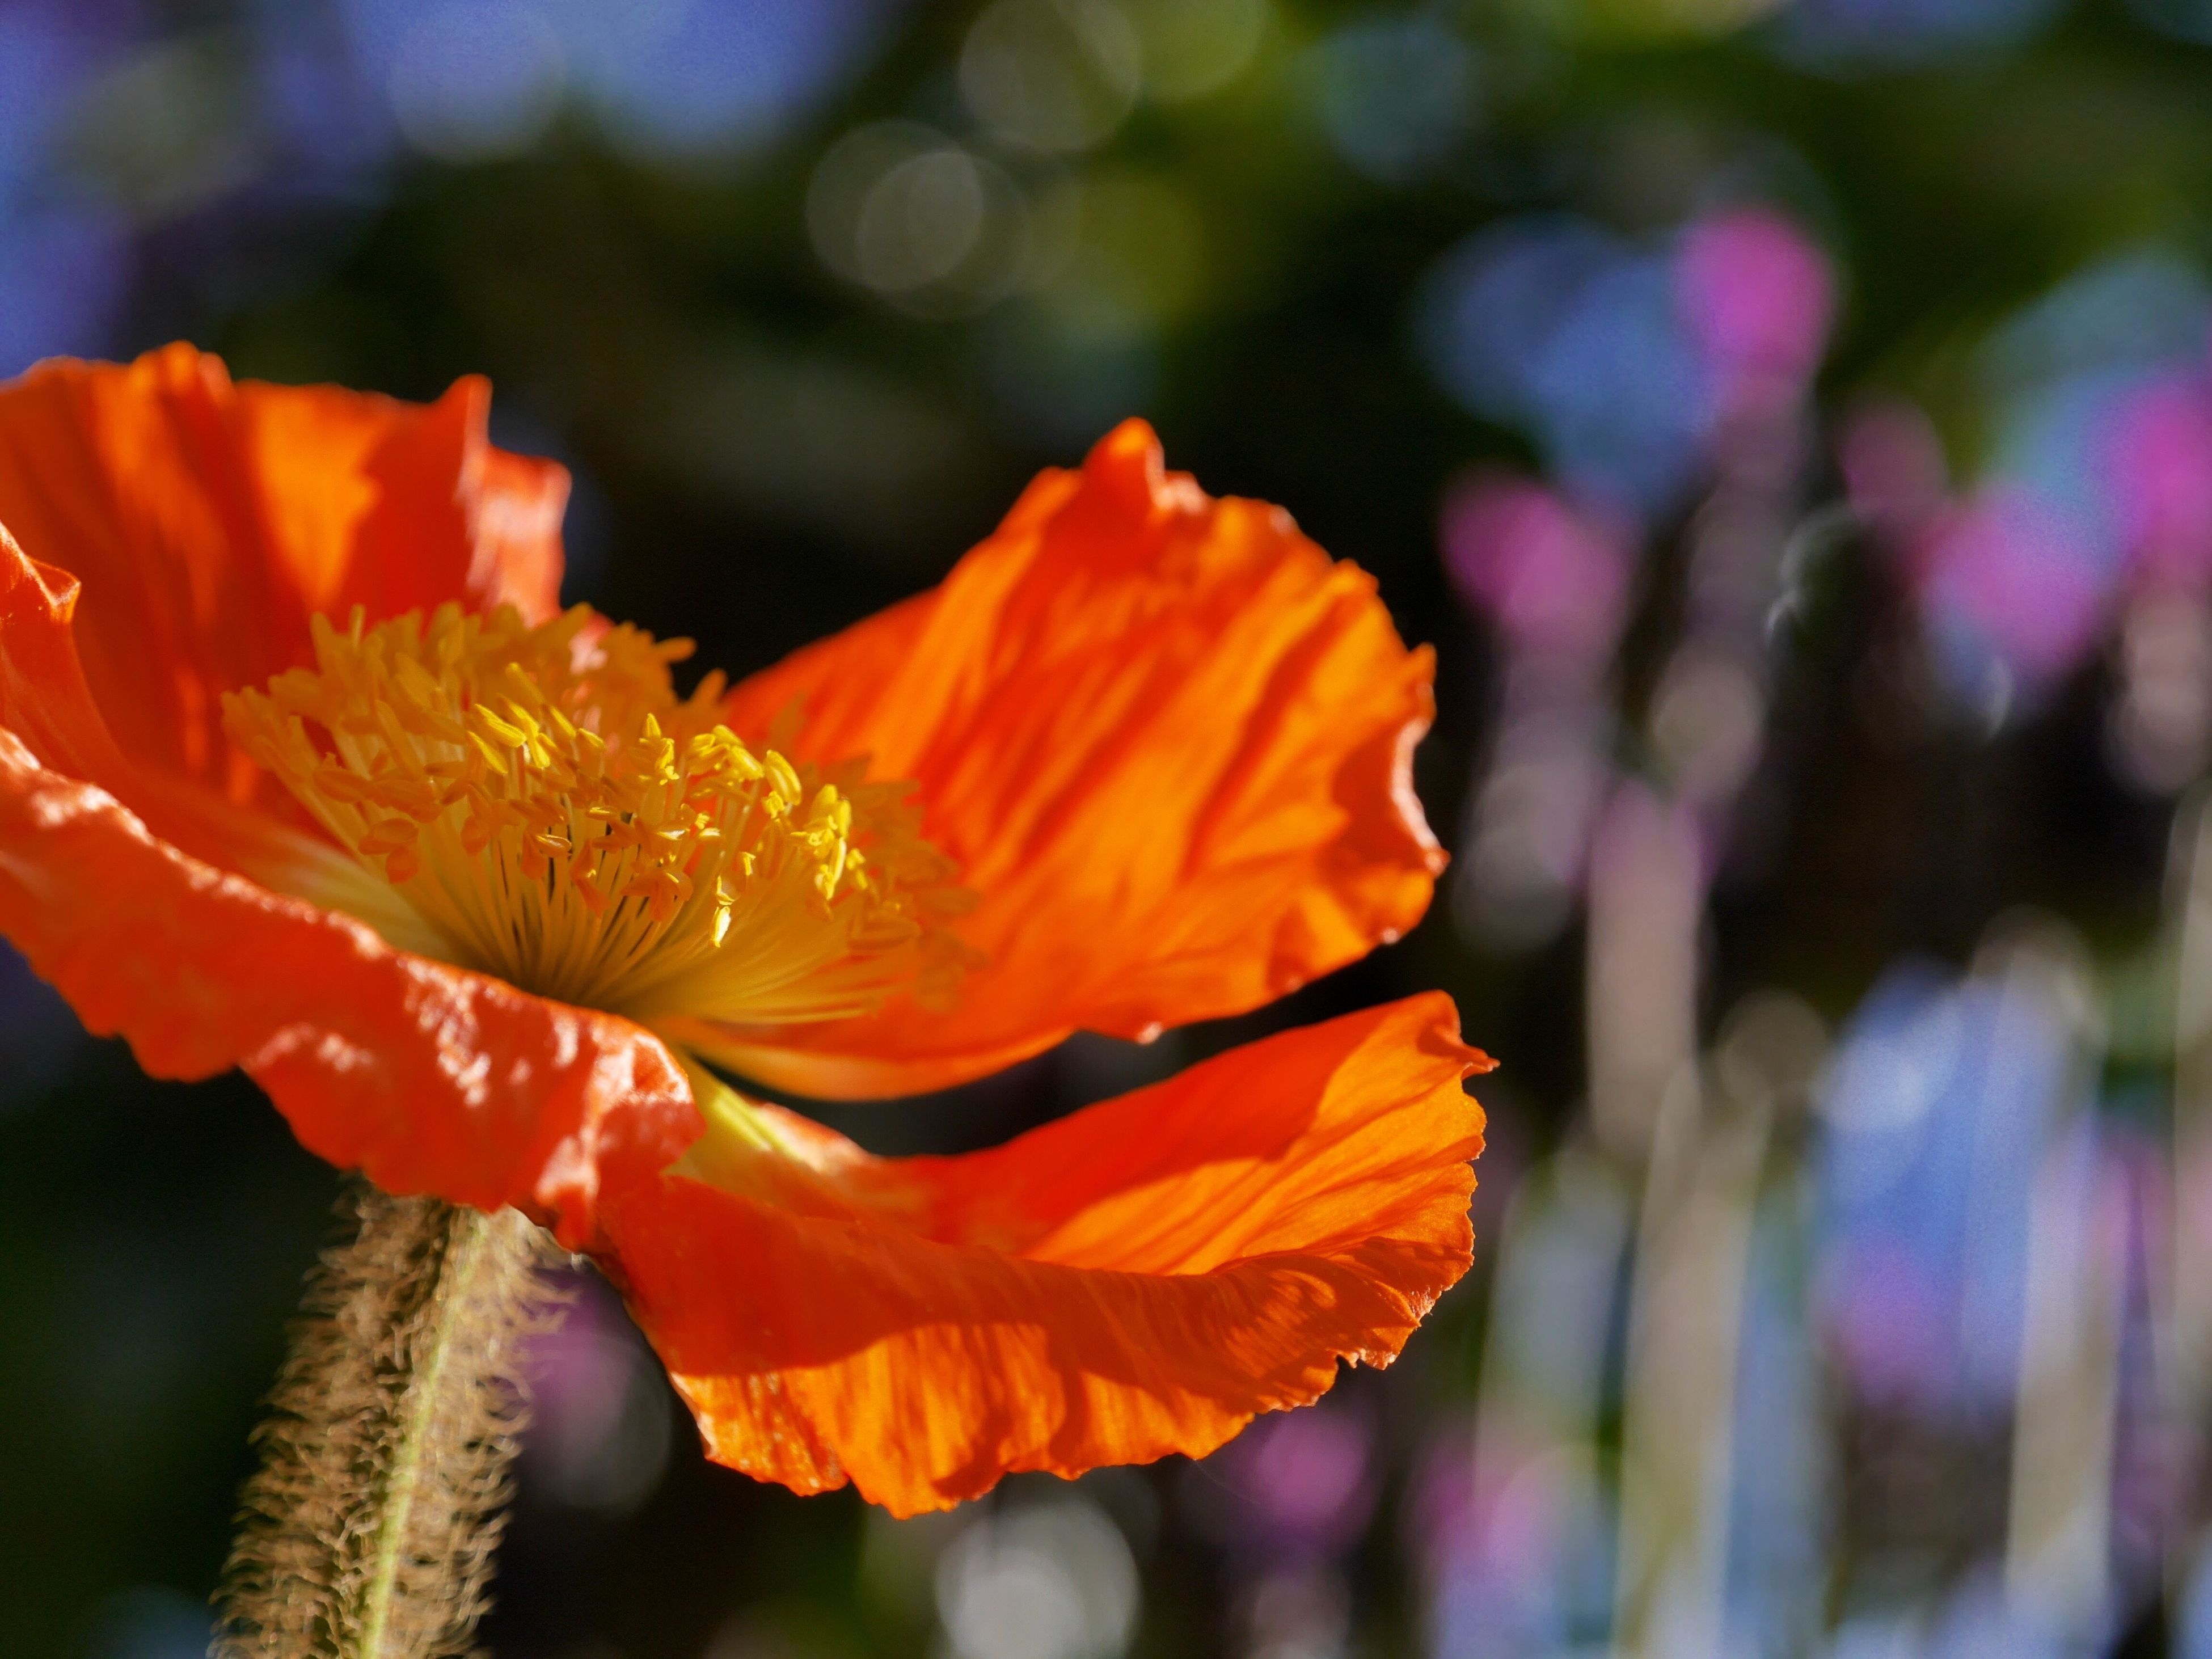 flower, petal, beauty in nature, nature, orange color, fragility, flower head, growth, focus on foreground, freshness, outdoors, plant, no people, day, blooming, close-up